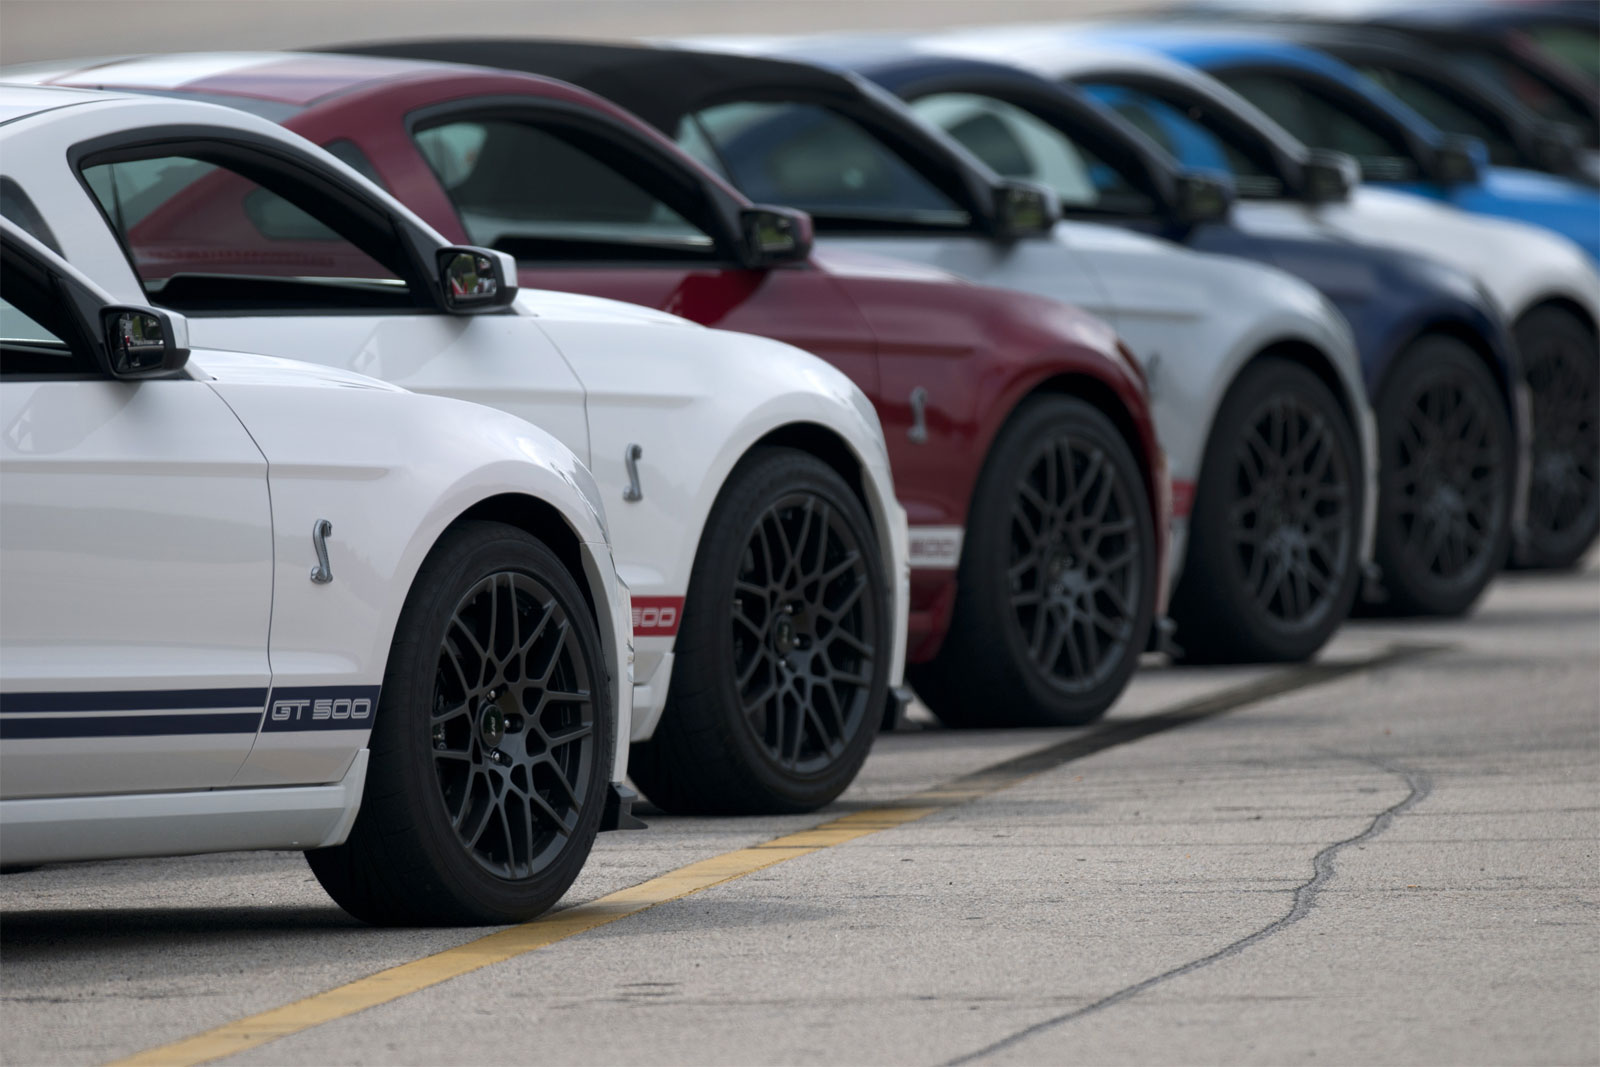 Sport Cars Ford Shelby GT500 Hd Wallpapers 2013 1600x1067